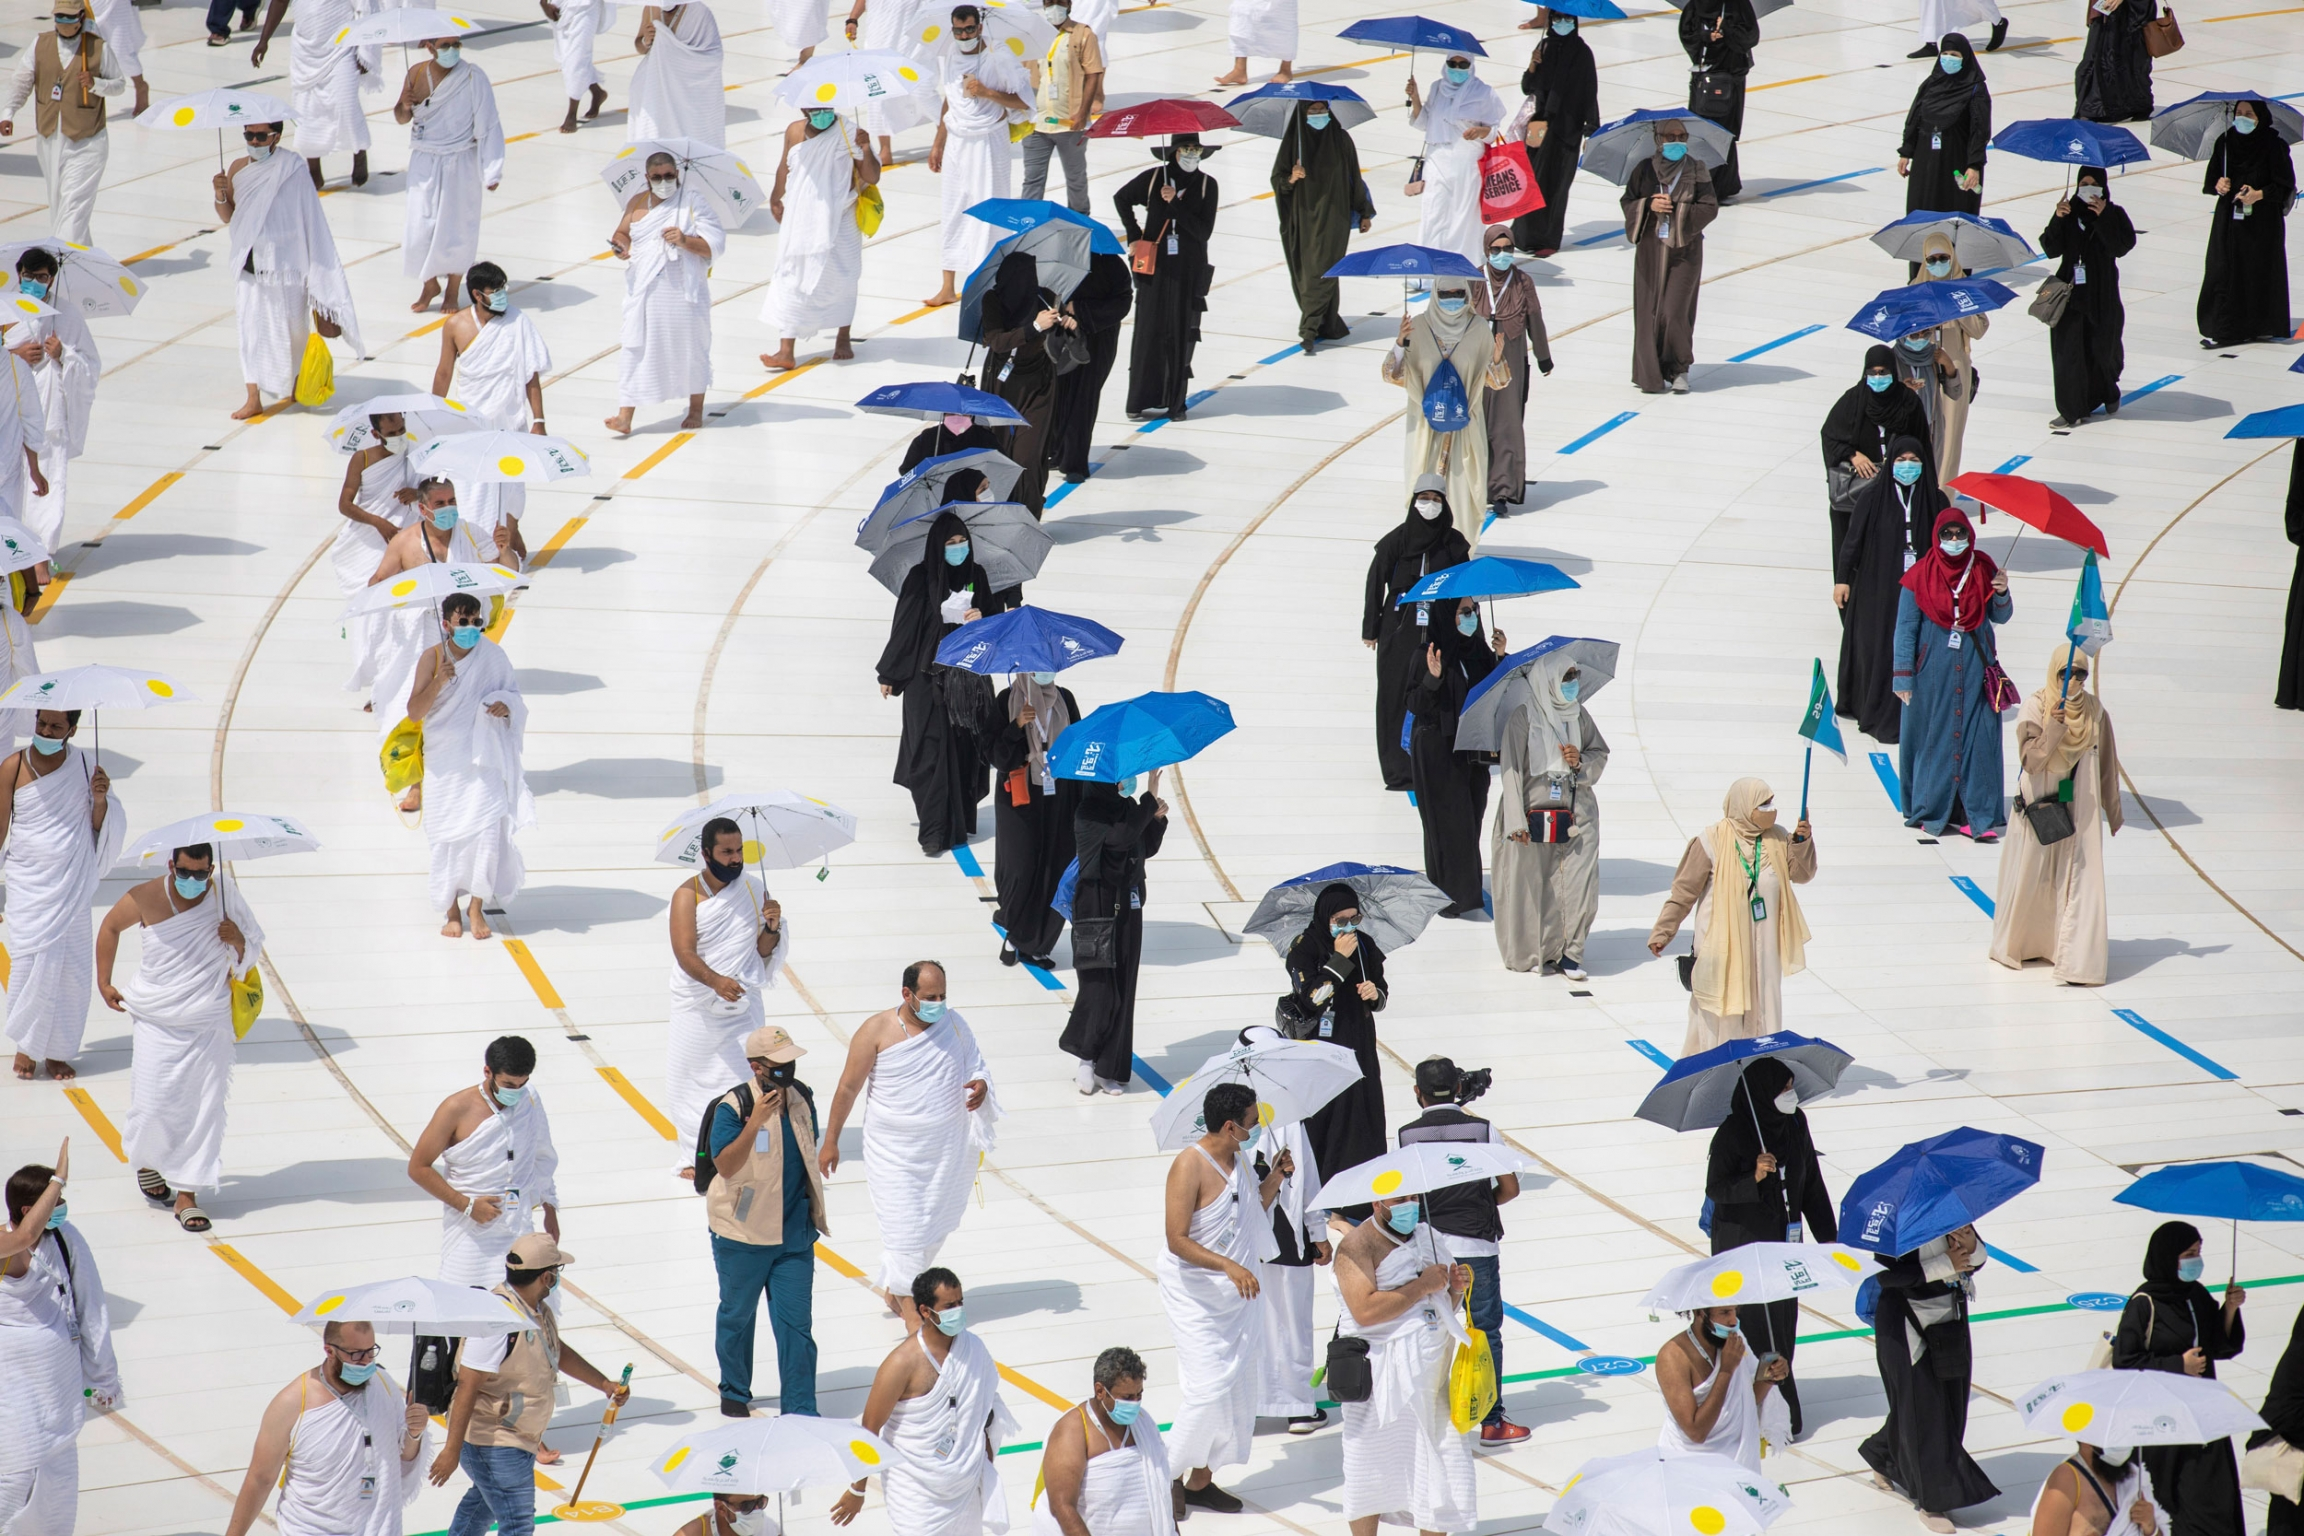 Pilgrims are shown walking on designated lines circuling the Kaaba.